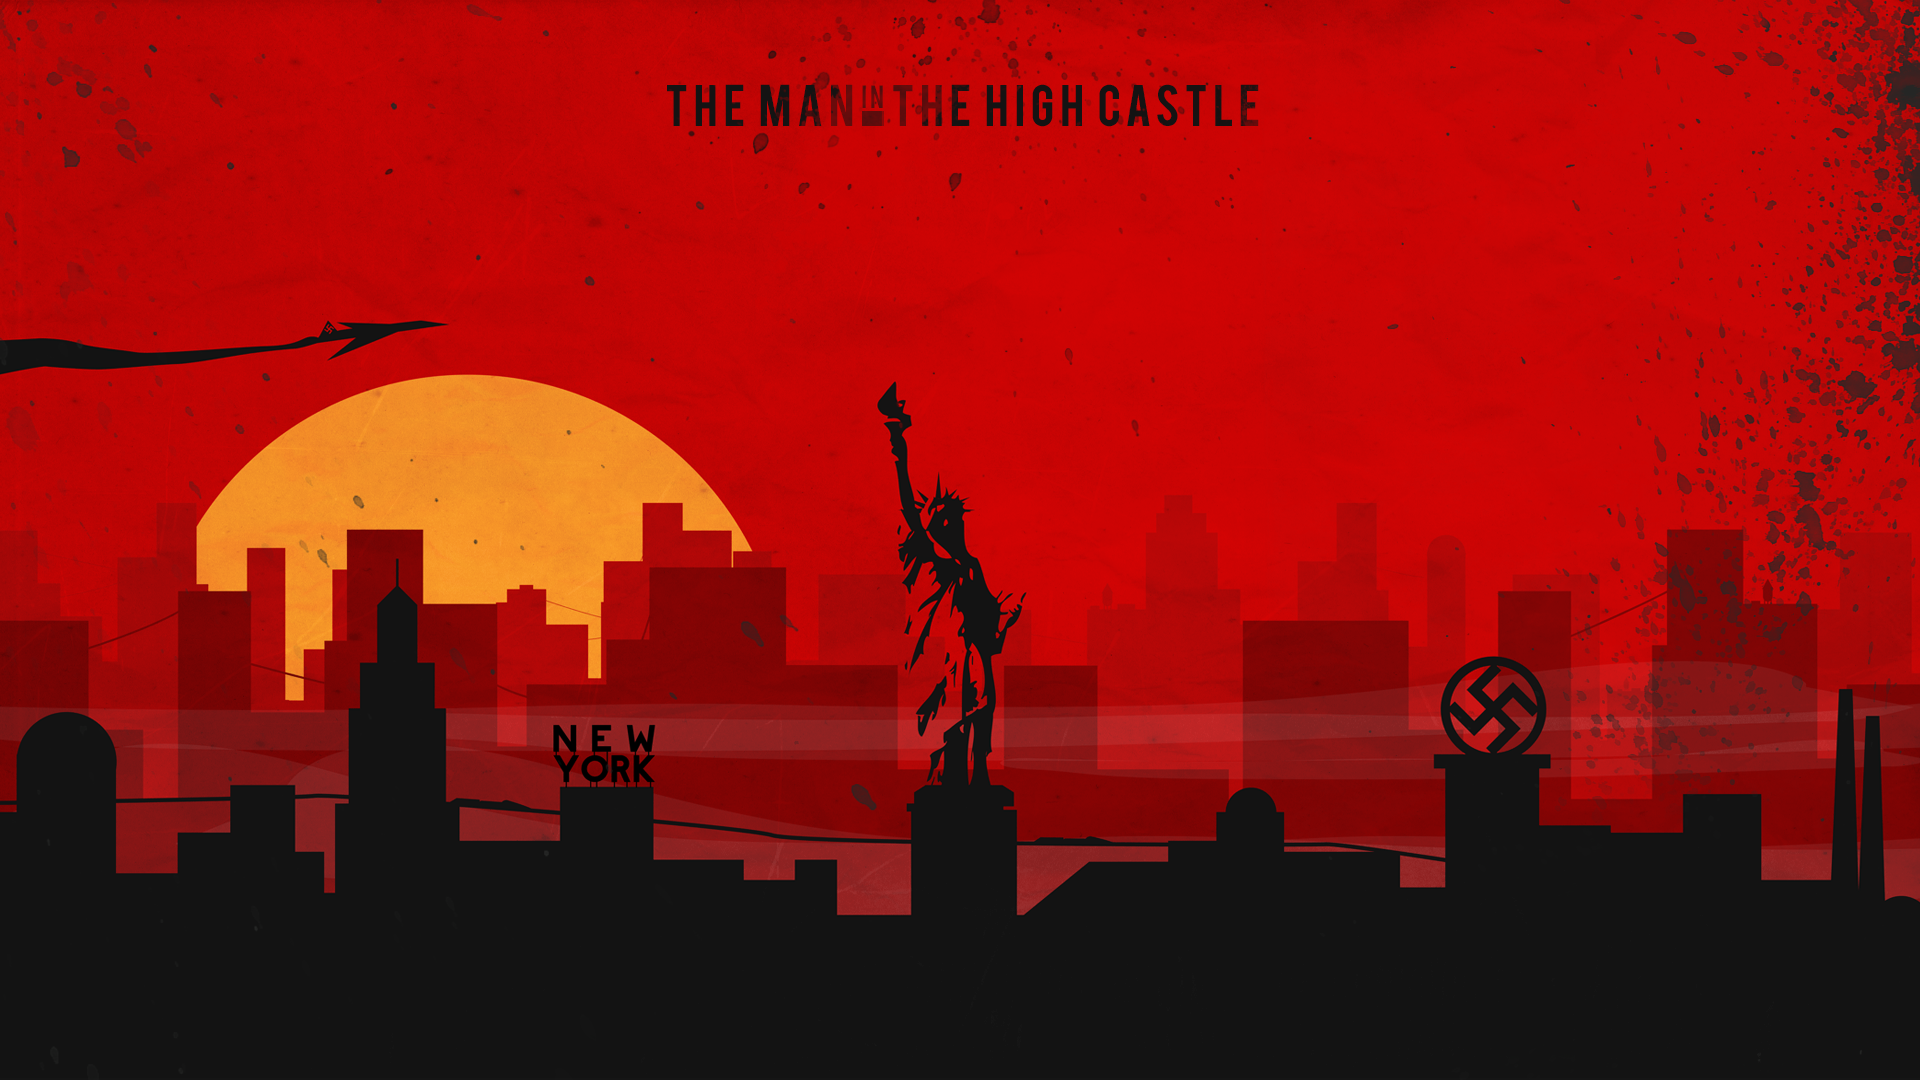 The Man In The High Castle Wallpaper 1 By Caparzofpc On Deviantart